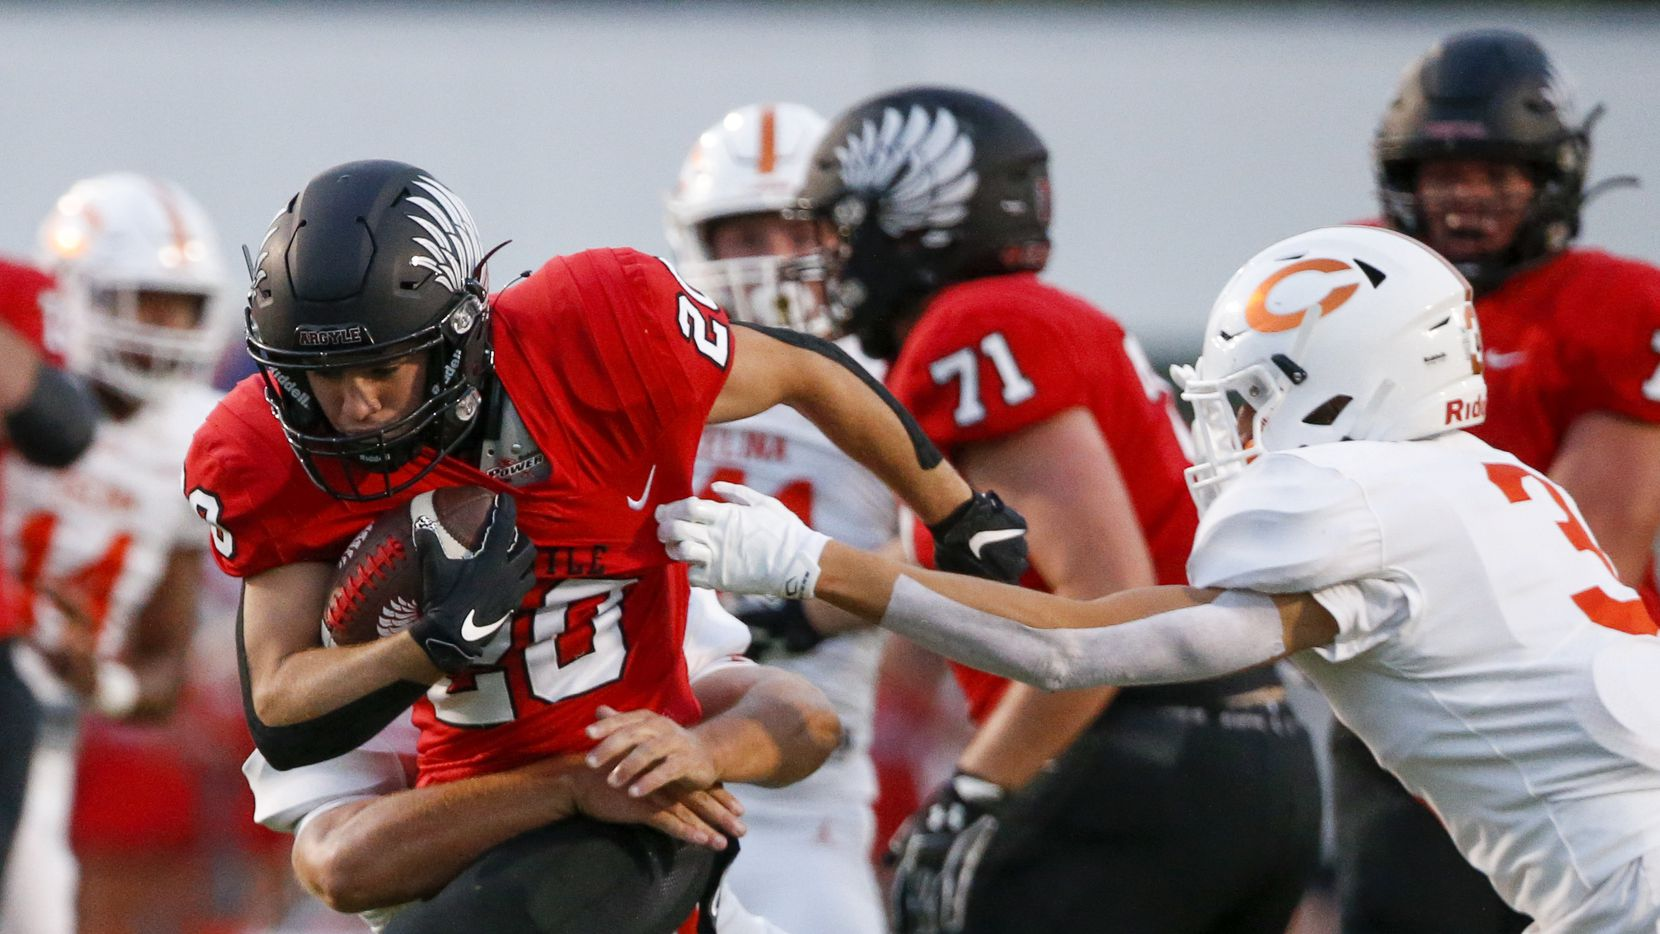 Argyle running back Landon Farris (20) is tackled by Celina linebacker Zach Veverka (34) as defensive back Jasmison Driver (3) closes in on the play during the first half of a high school football game on Friday, Sept. 10, 2021, in Argyle, Texas. (Elias Valverde II/The Dallas Morning News)